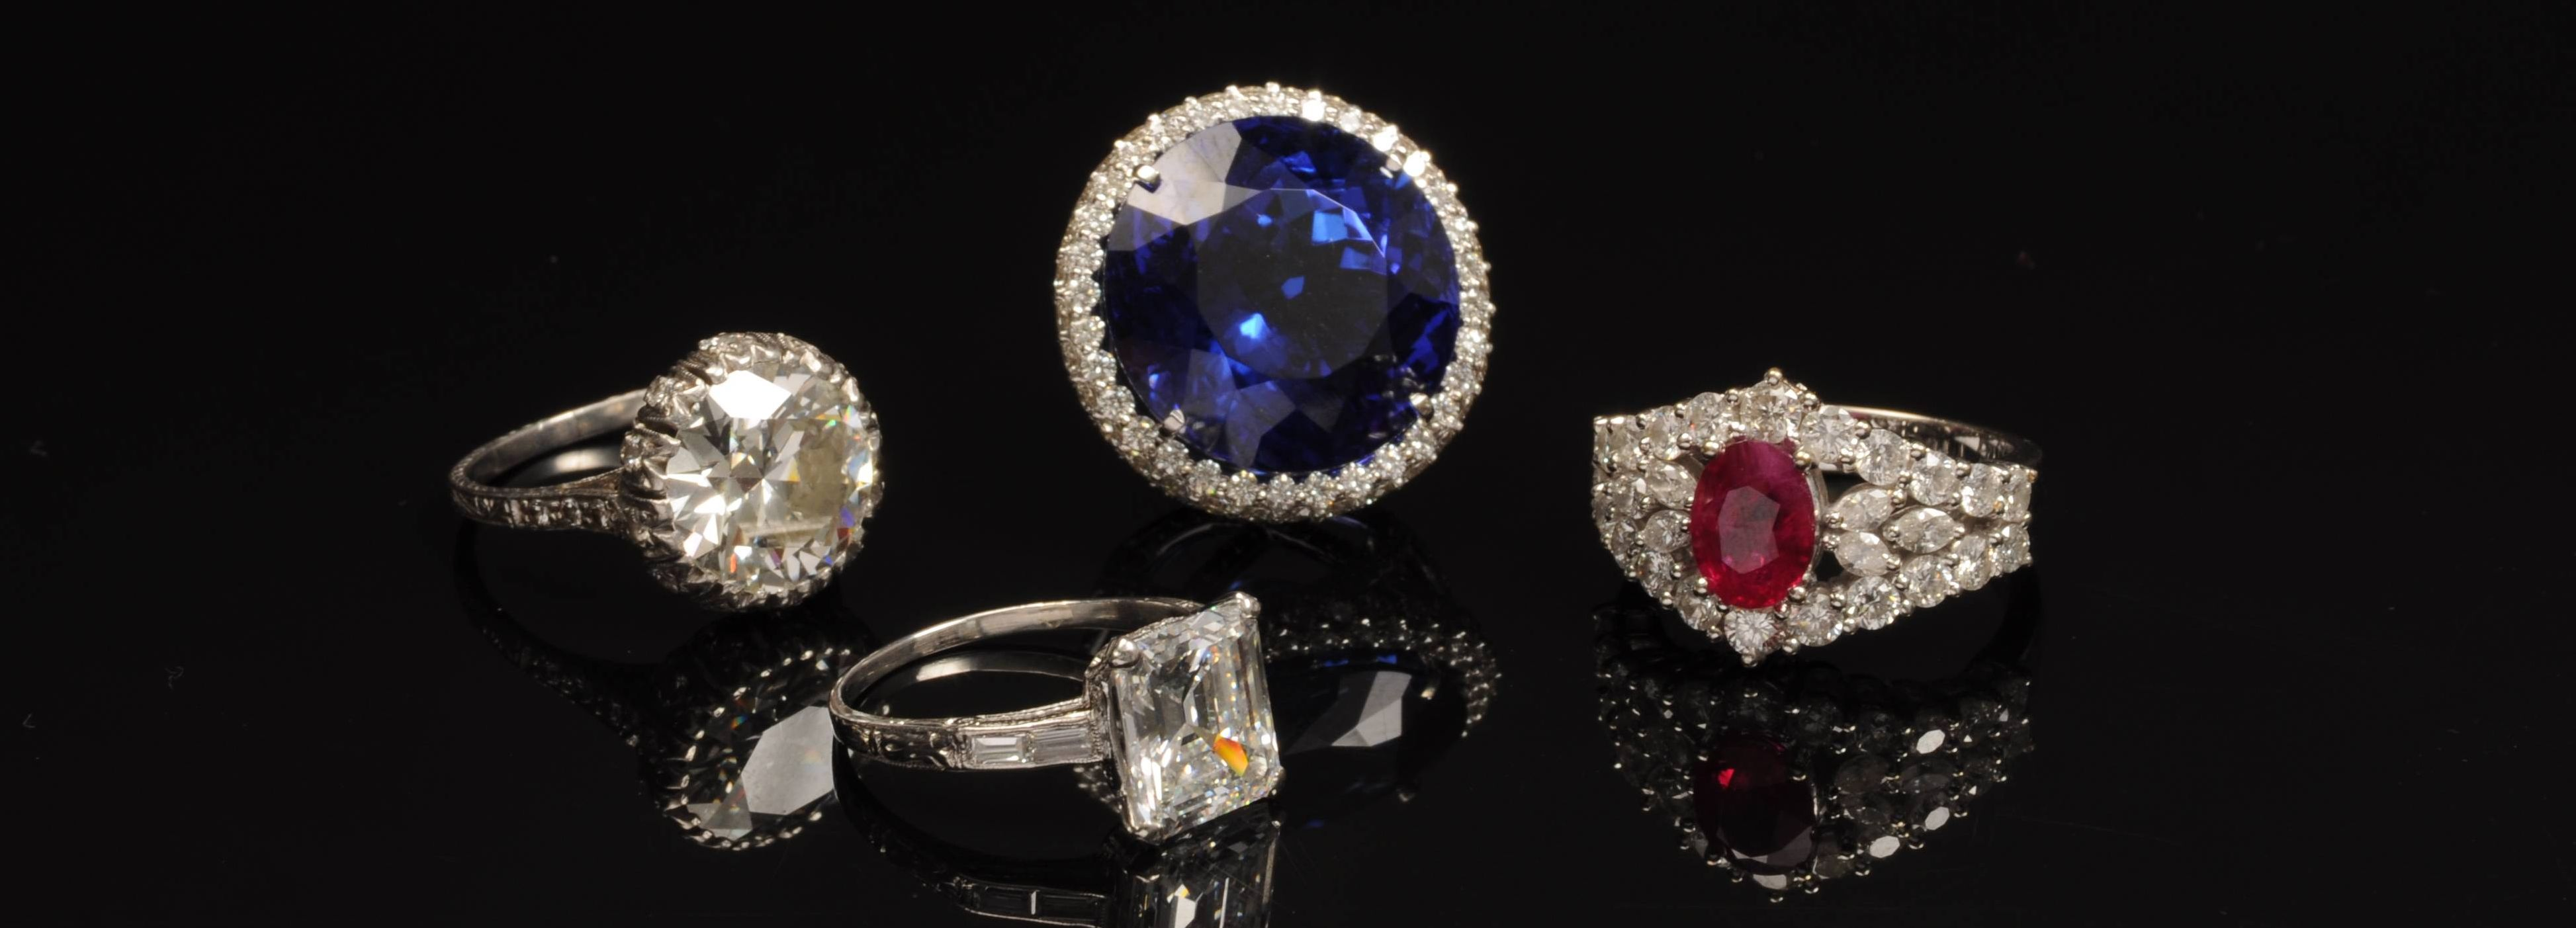 Where to sell estate jewelry antique jewelry online for Best place to sell jewelry online